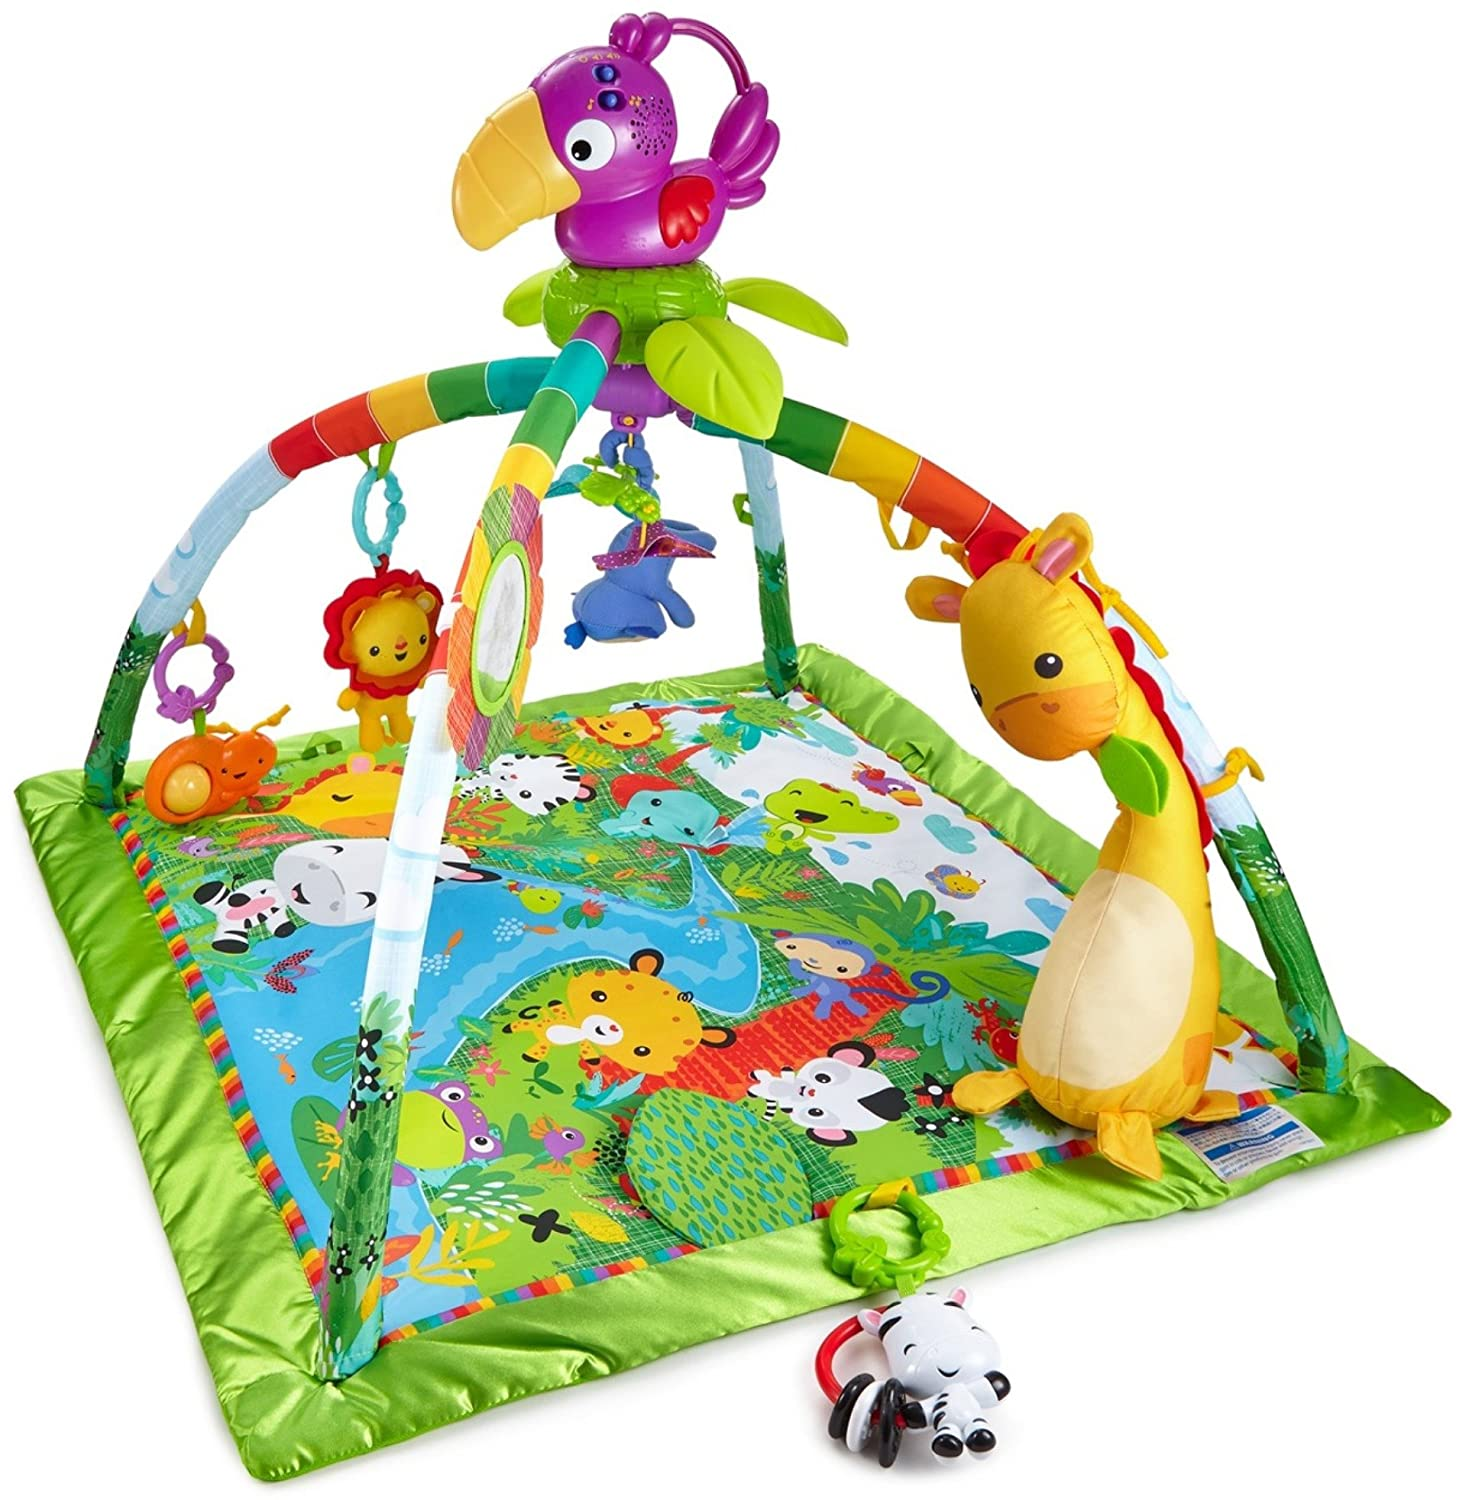 Fisher-Price Music & Lights Deluxe Gym, Rainforest DFP08